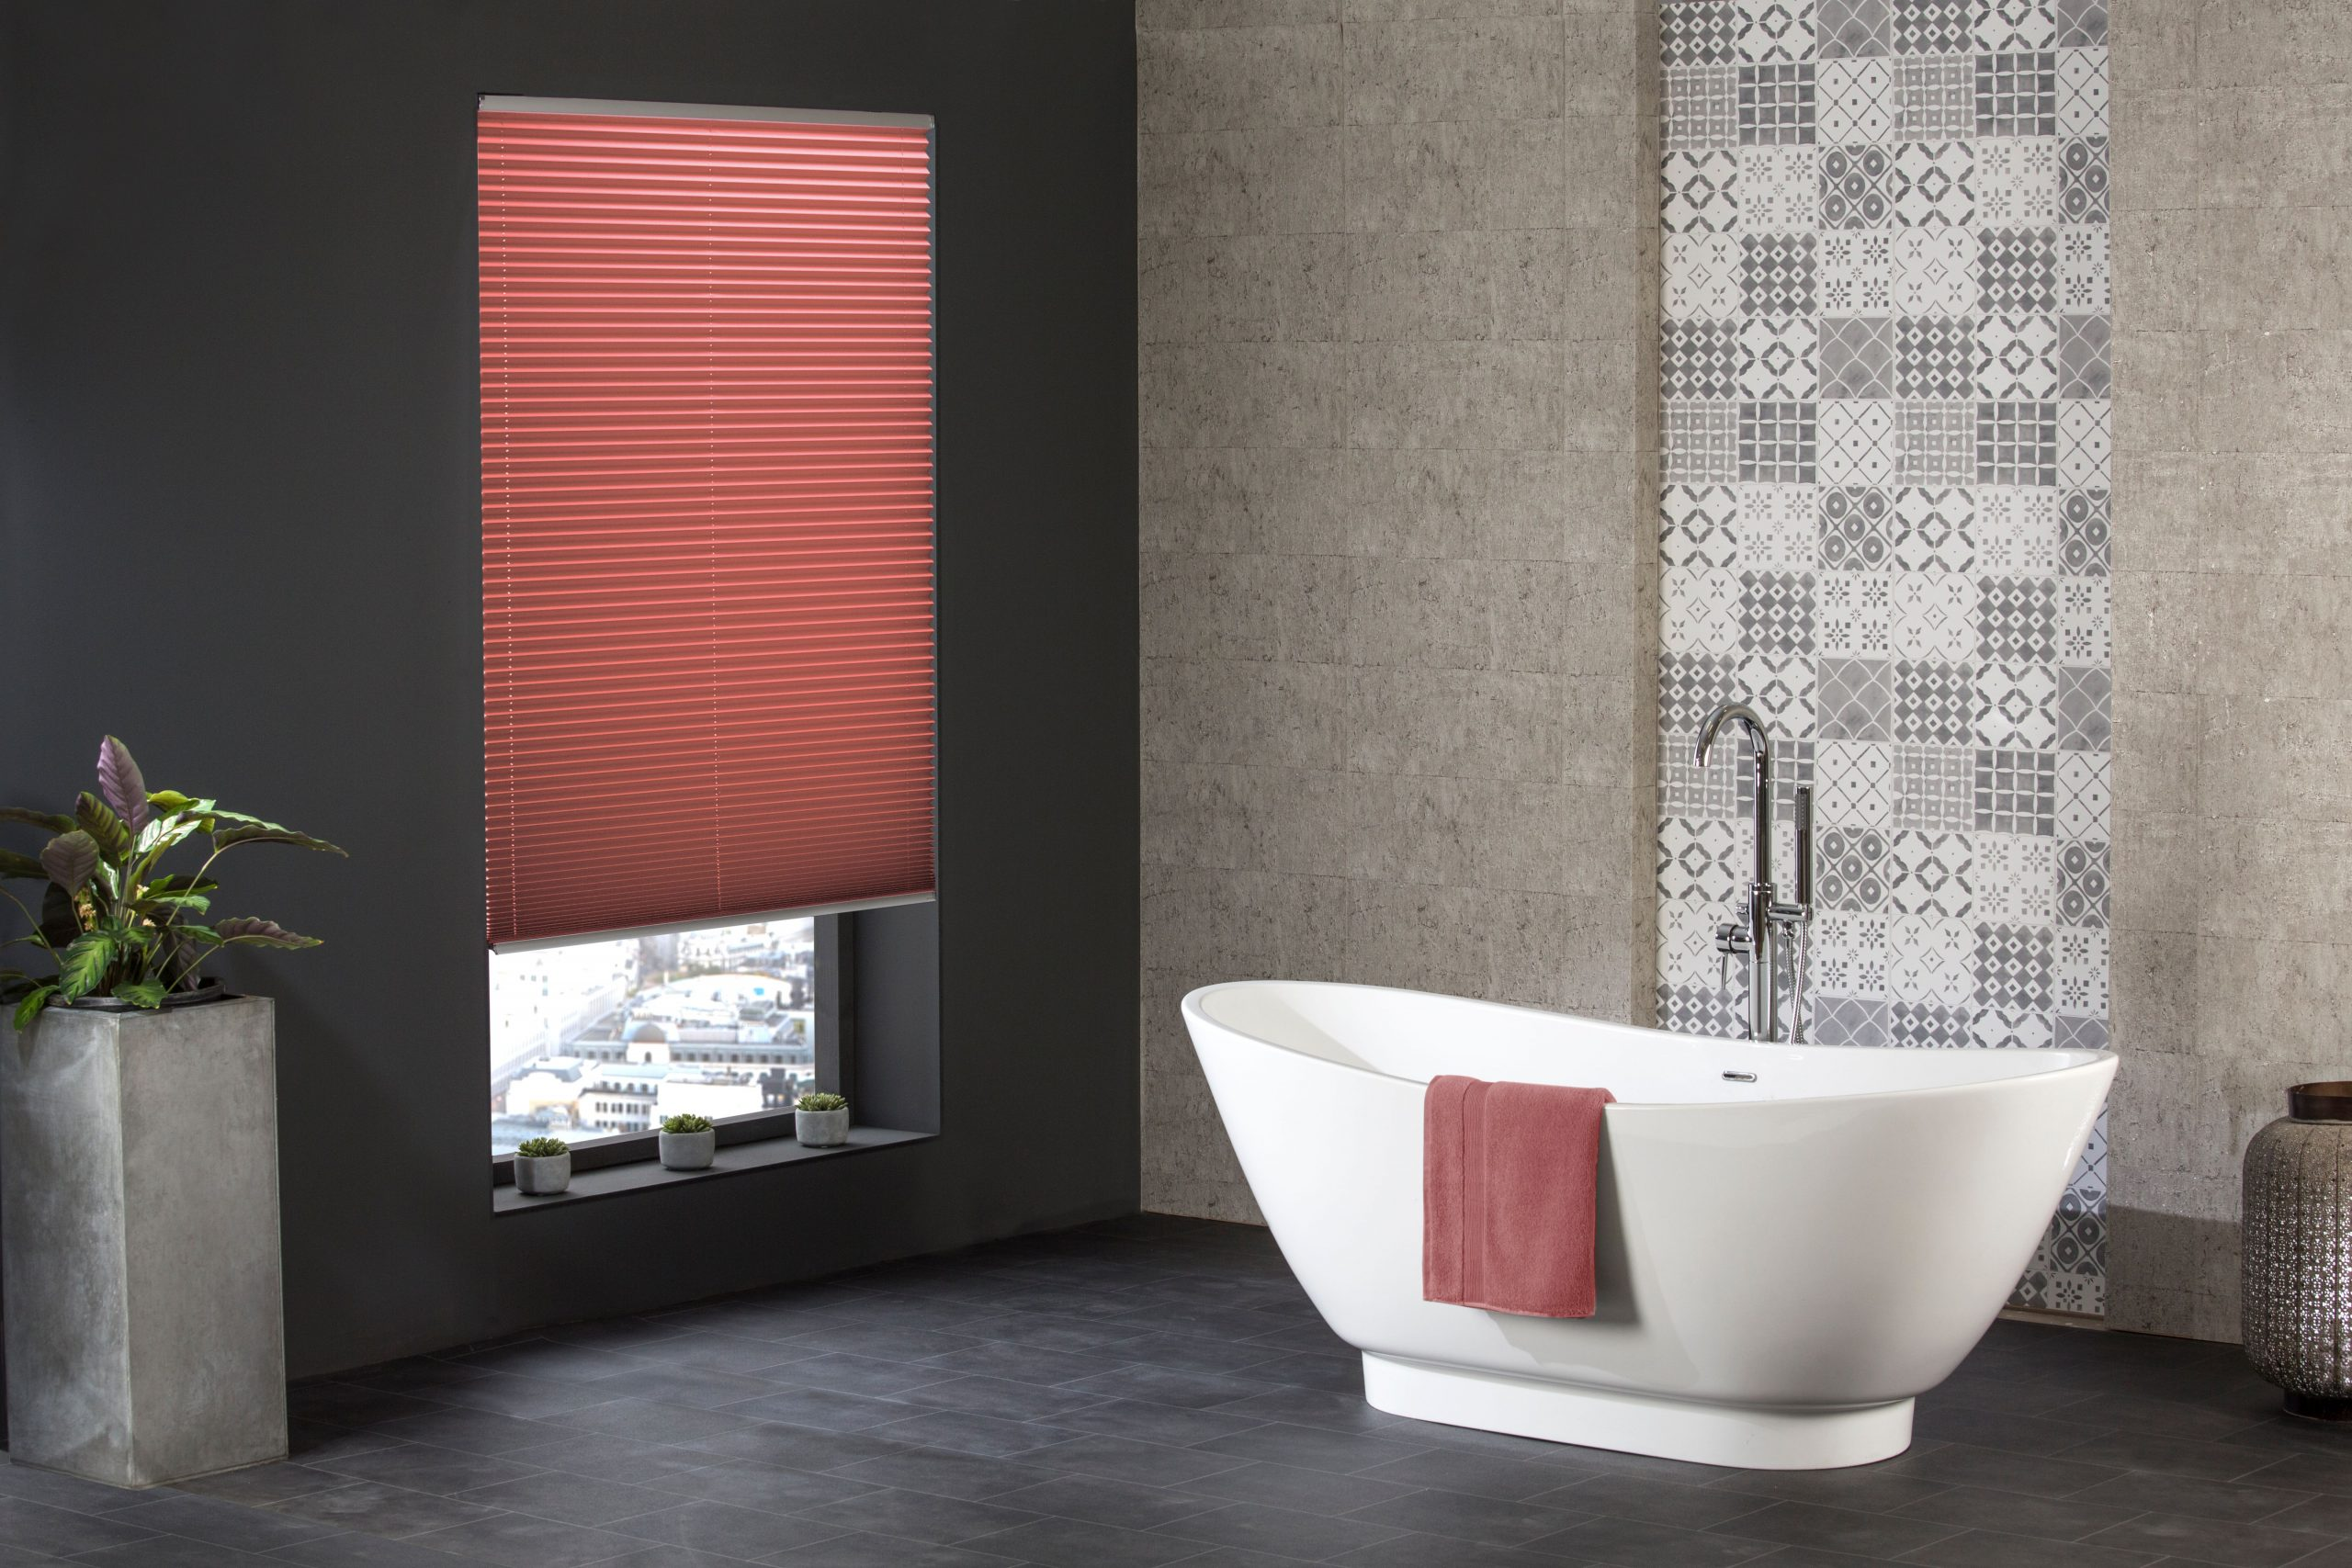 Bespoke red window blinds